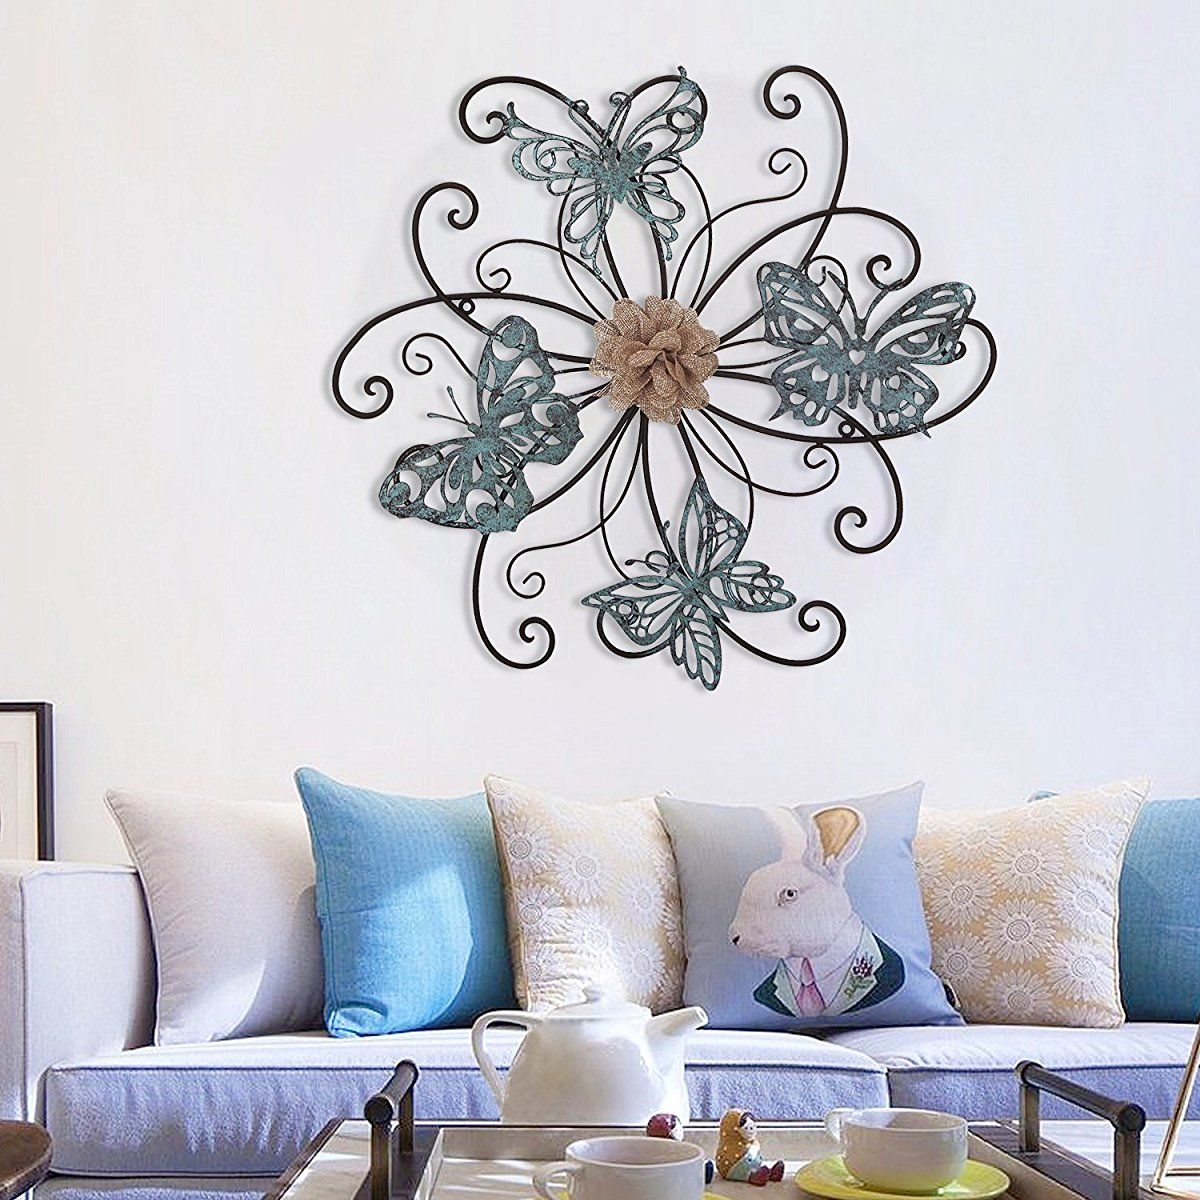 Homes Art Flower And Butterfly Urban Design Metal Wall Decor with Flower Urban Design Metal Wall Decor (Image 19 of 30)